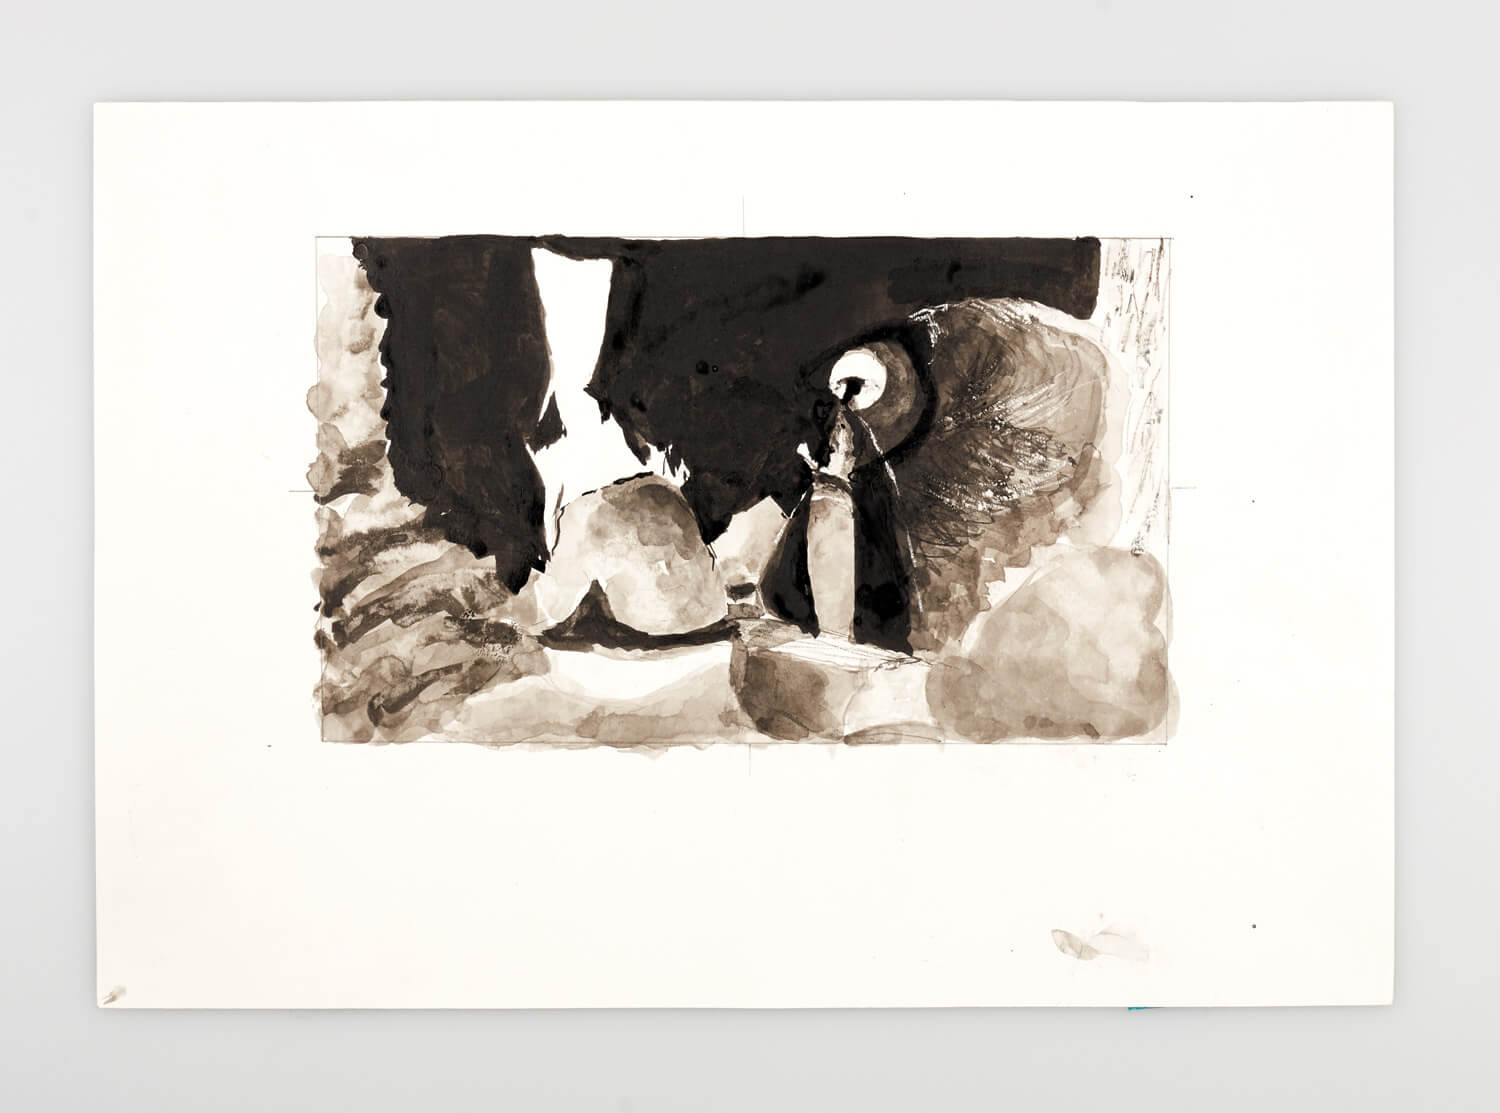 JB093 - Natural Forms Landscape study 1 - 1999 - 20 x 33 cm - Indian ink and w